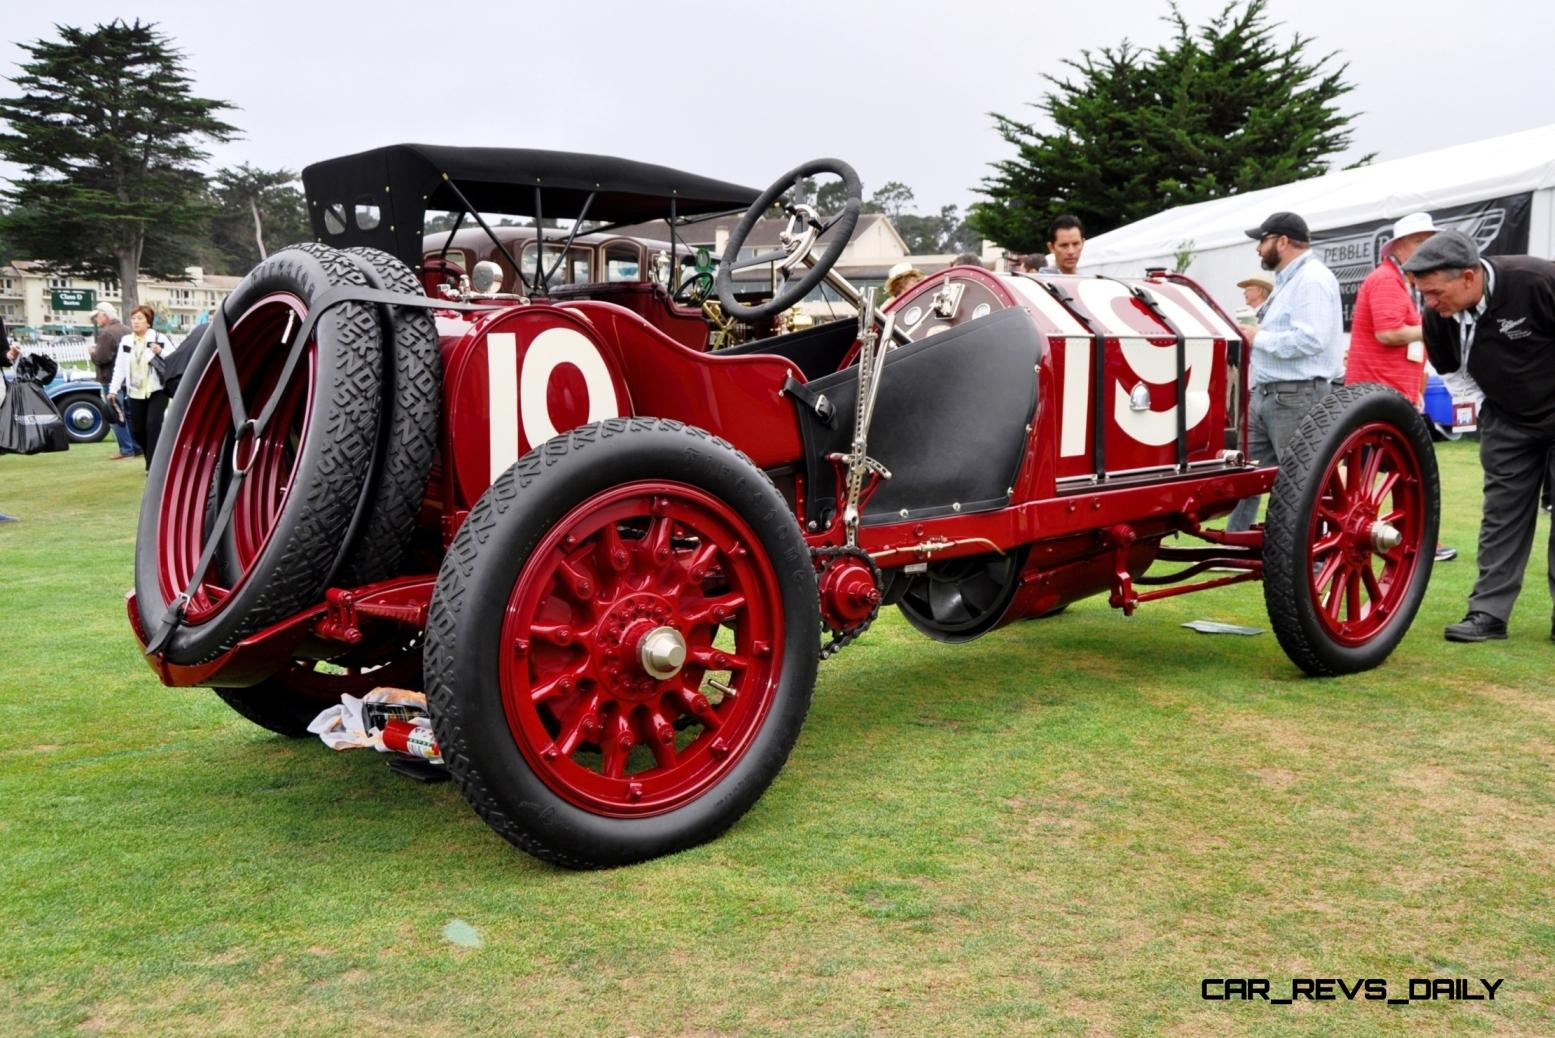 1910 Fiat S10 Racing Is Highlight In World Of Steam Cars